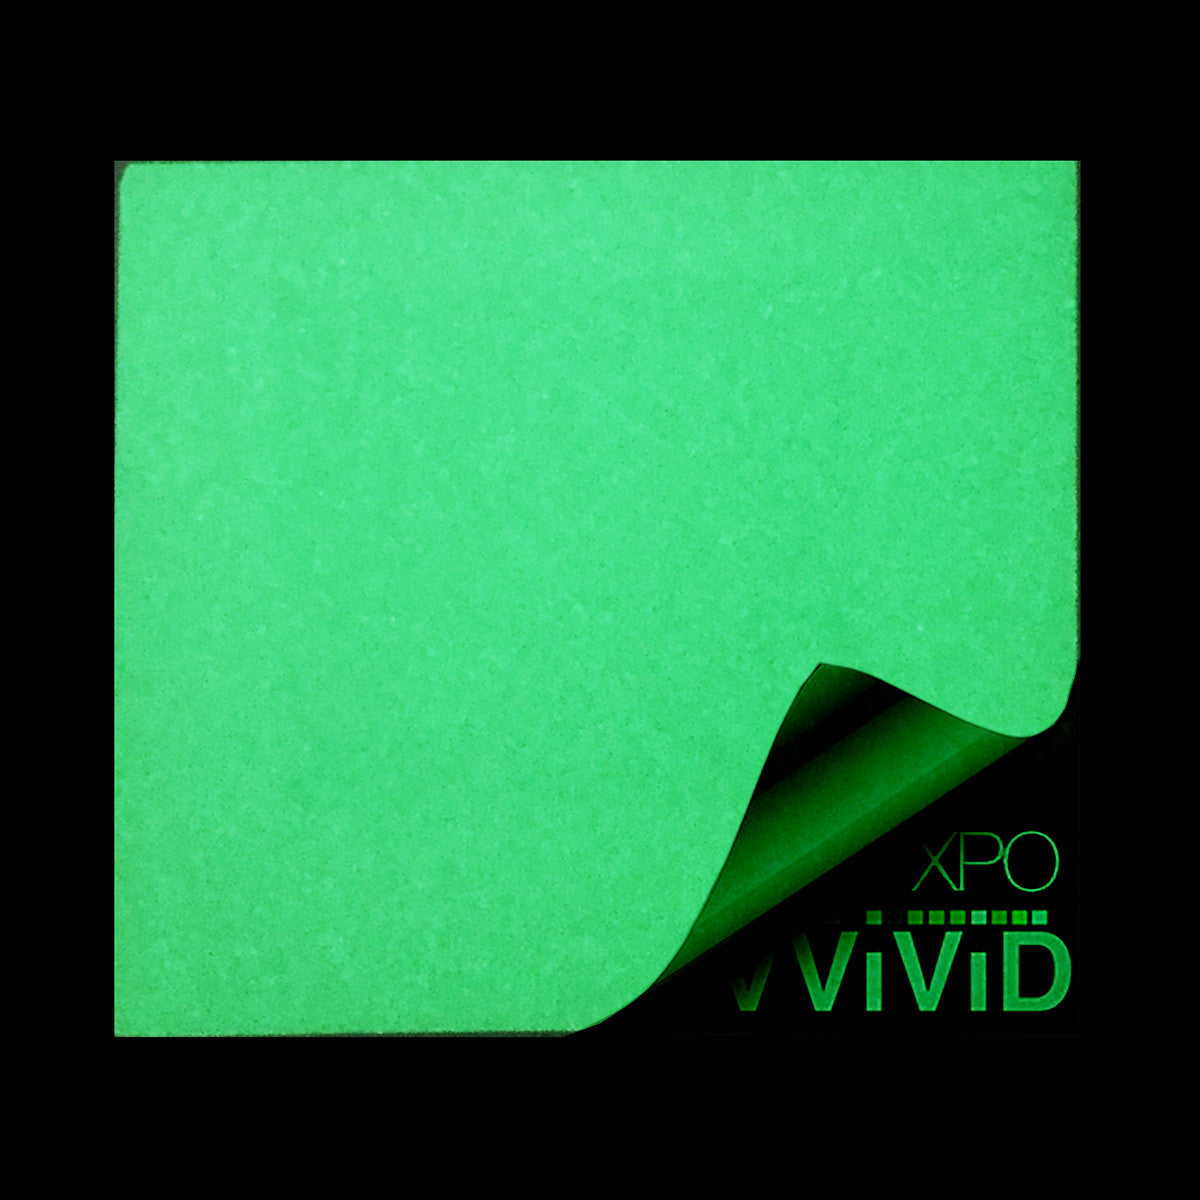 XPO Glow In The Dark Green Vinyl Wrap | Vvivid Canada